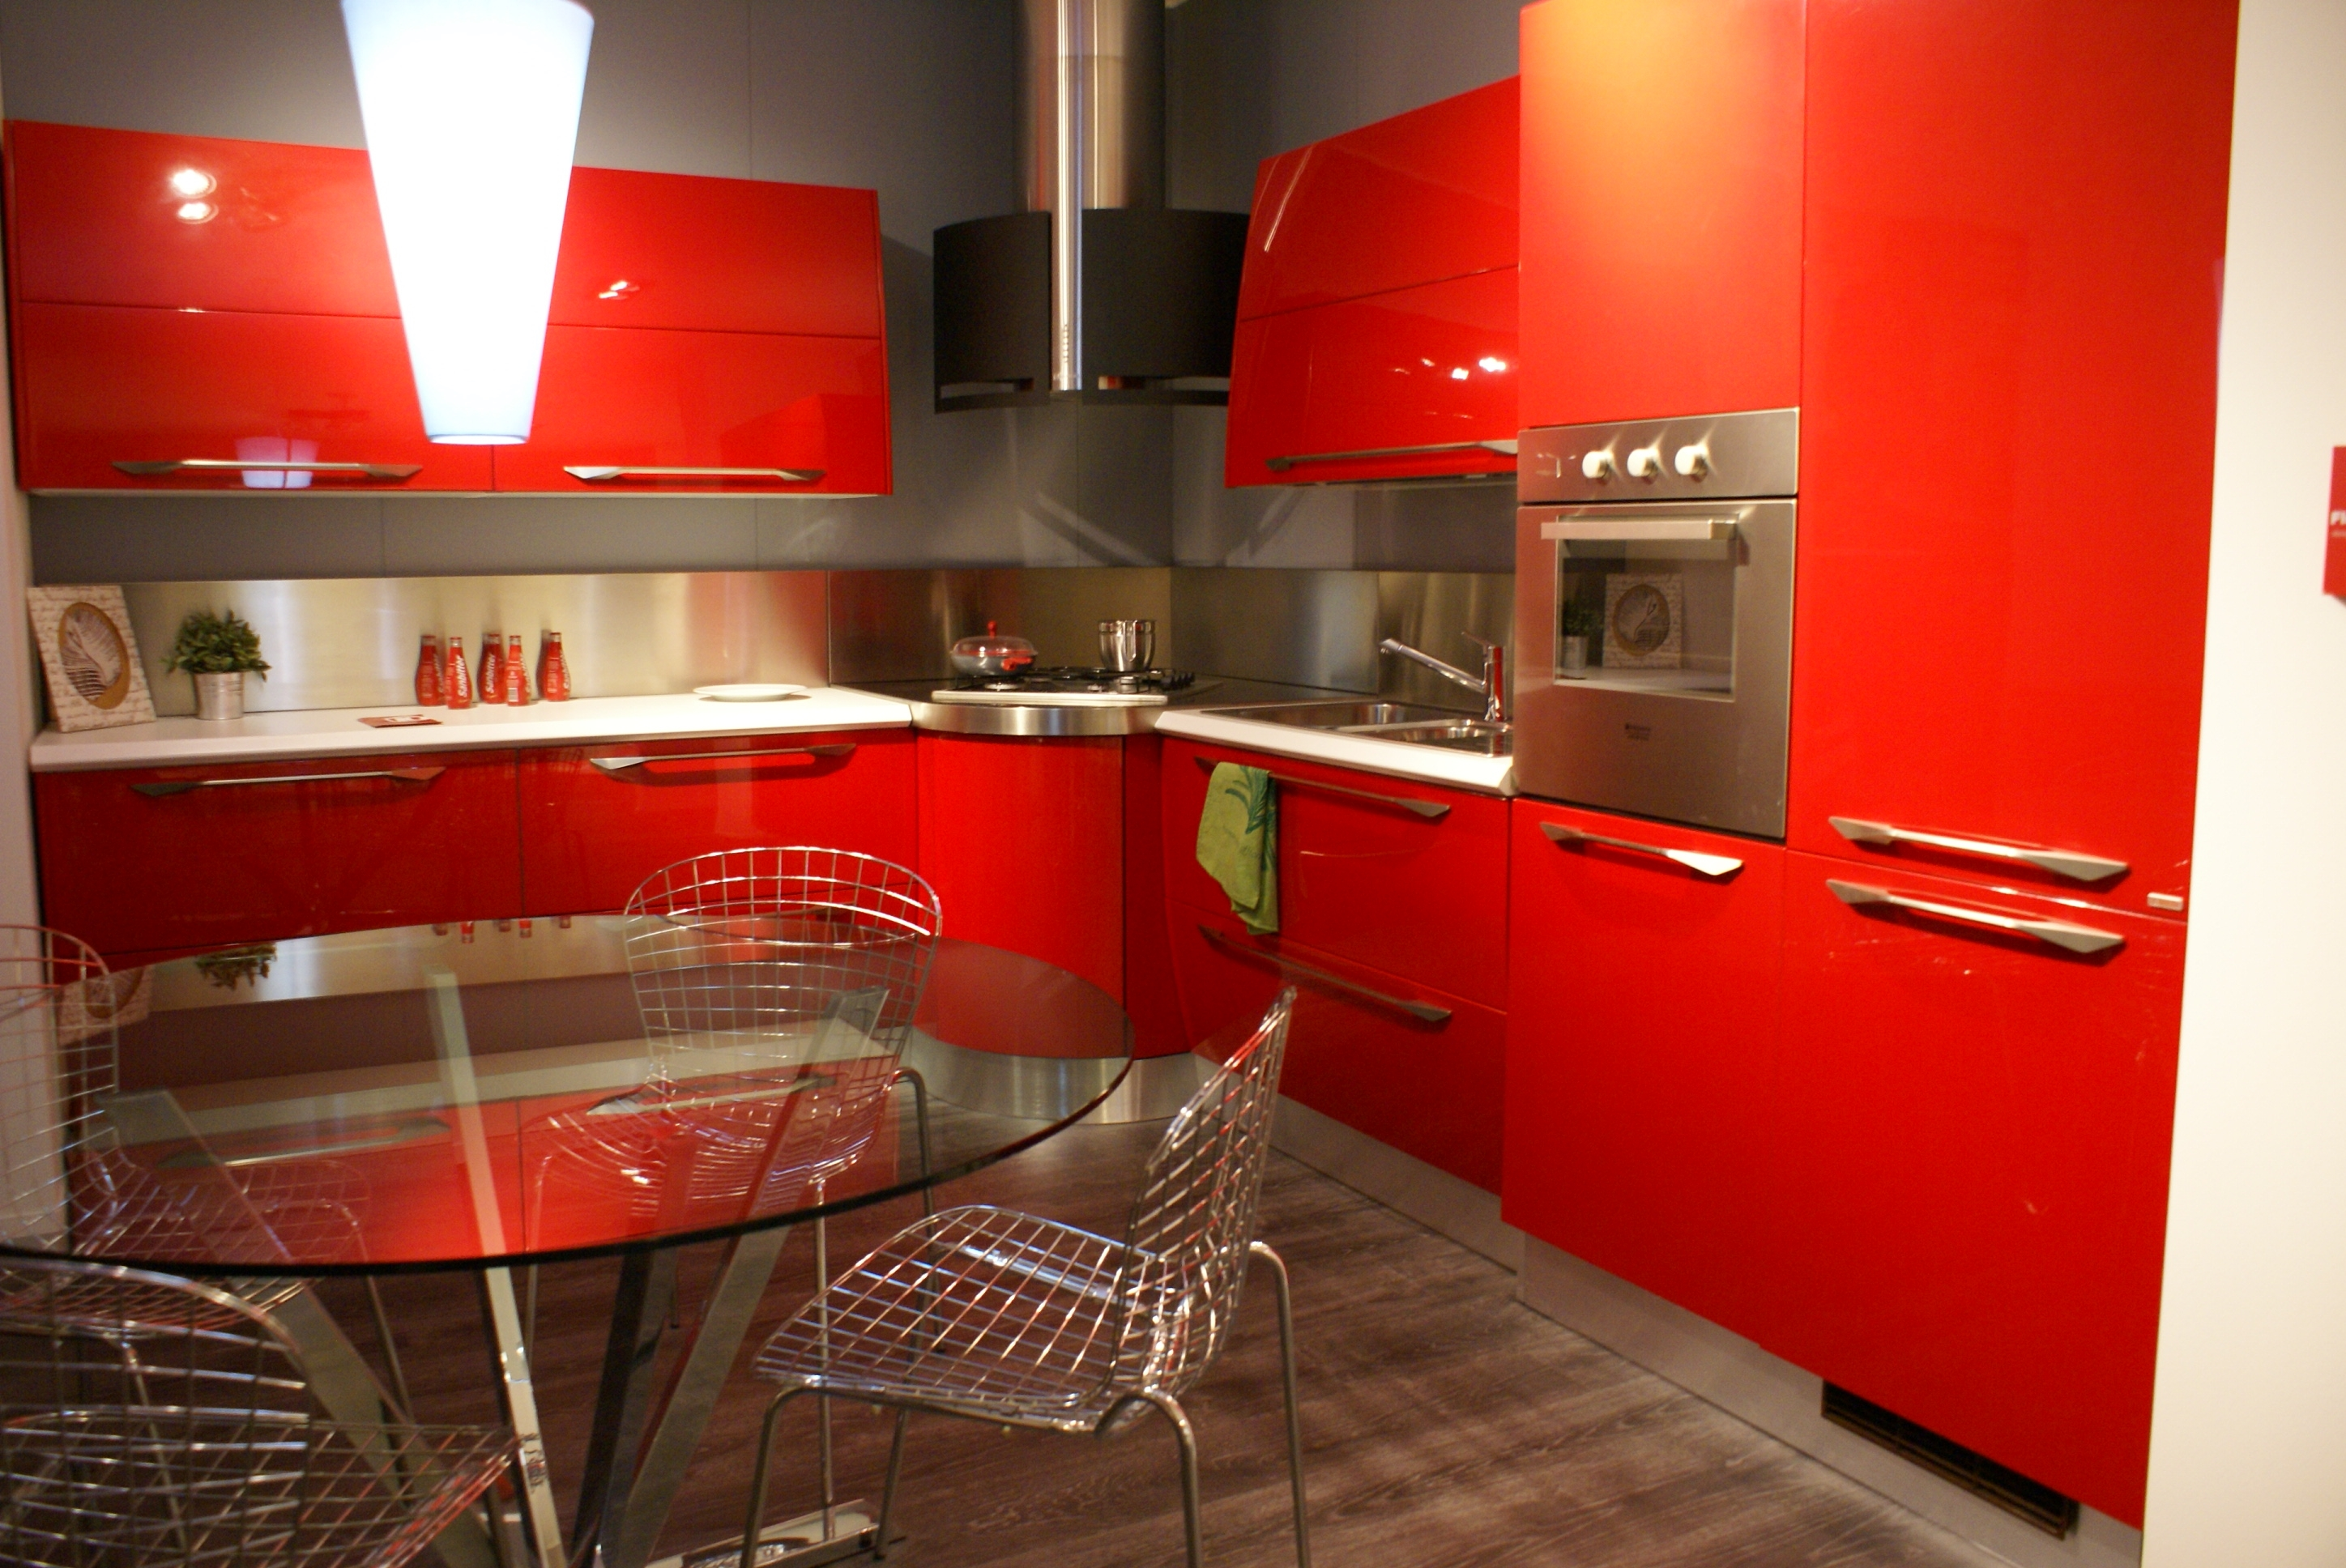 Awesome Cucina Scavolini Rossa Images - bakeroffroad.us ...